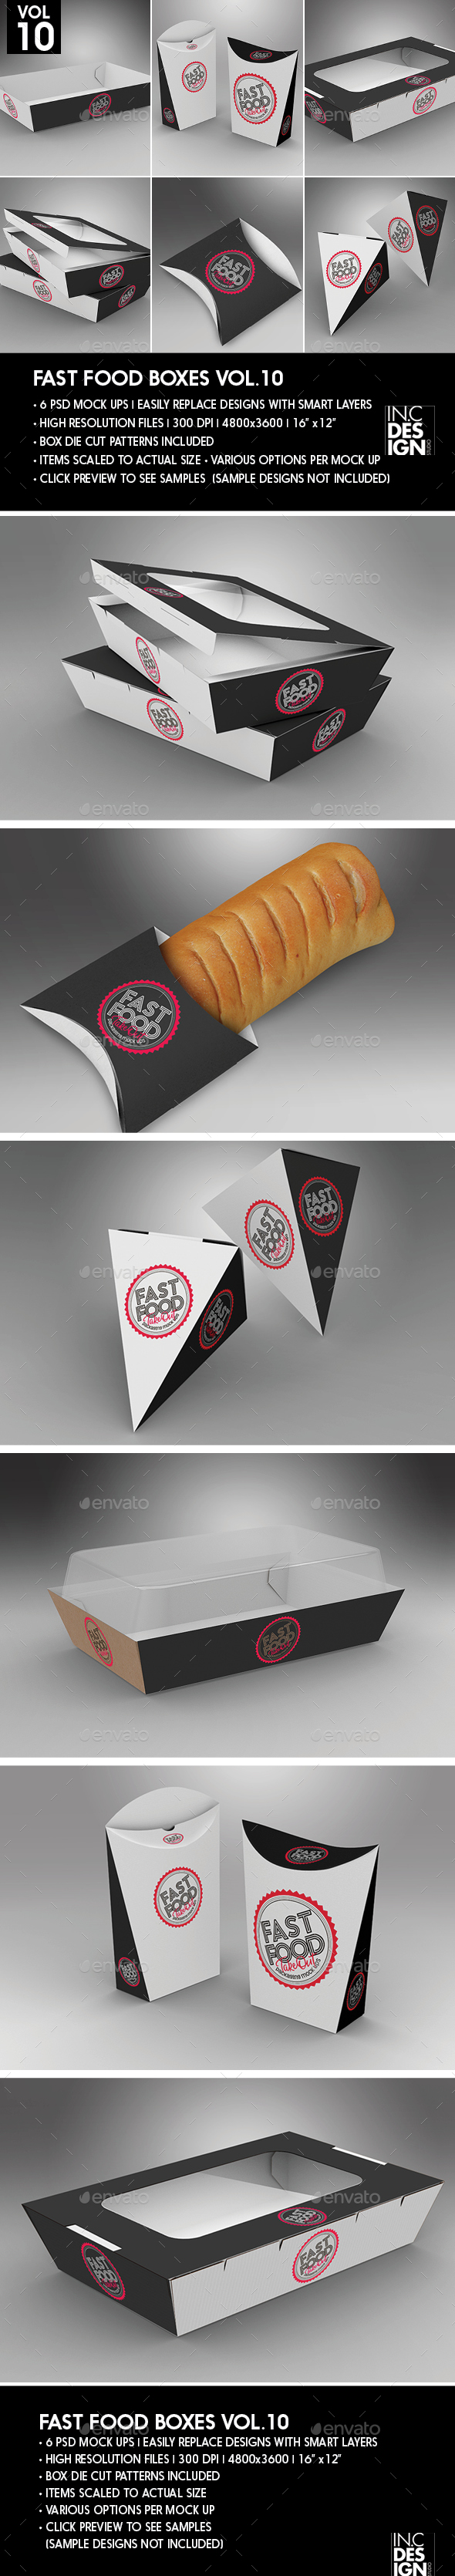 Fast Food Boxes Vol.10:Take Out Packaging Mock Ups